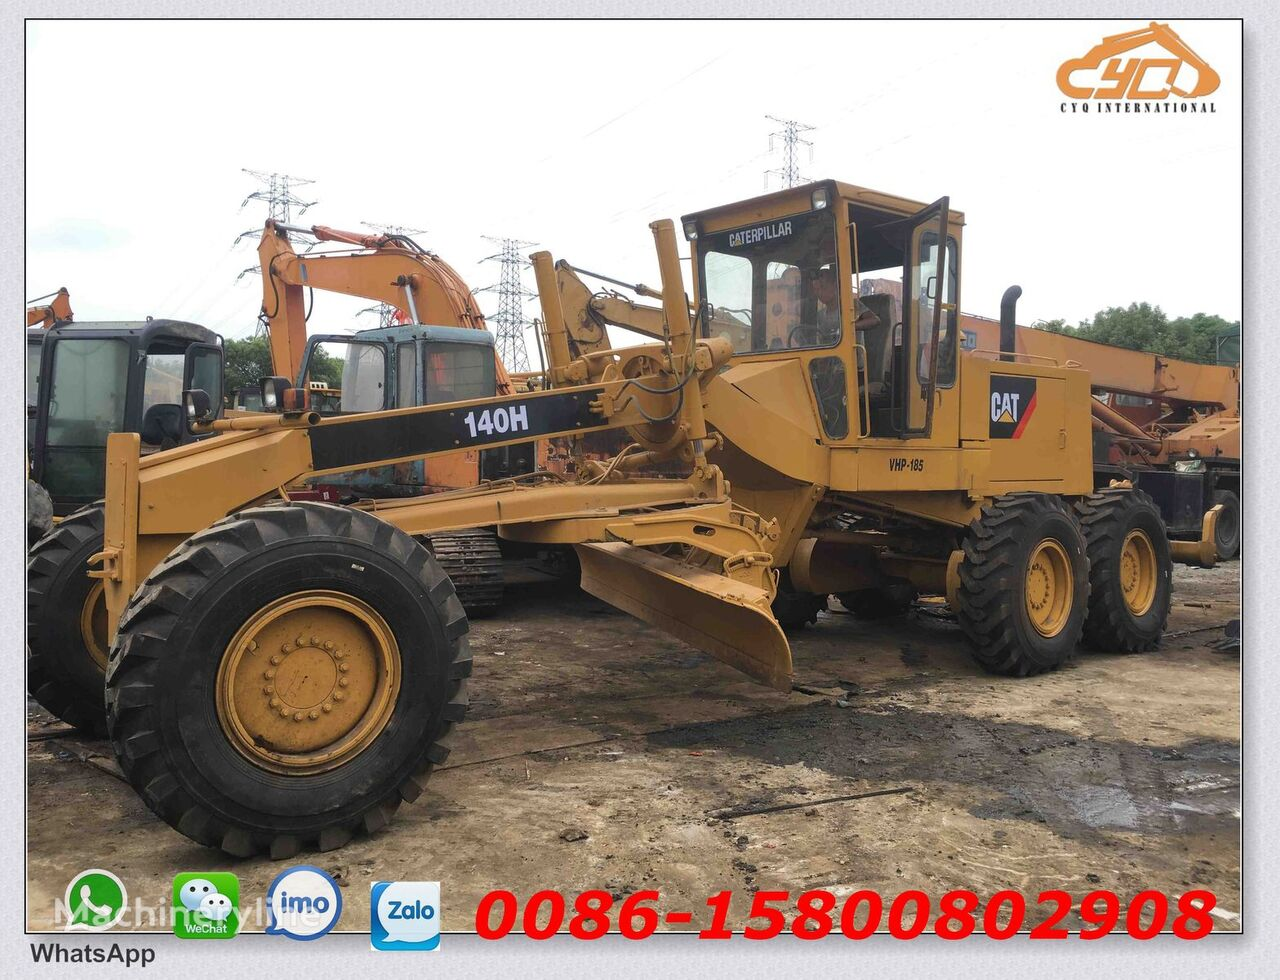 CATERPILLAR 140H grejder